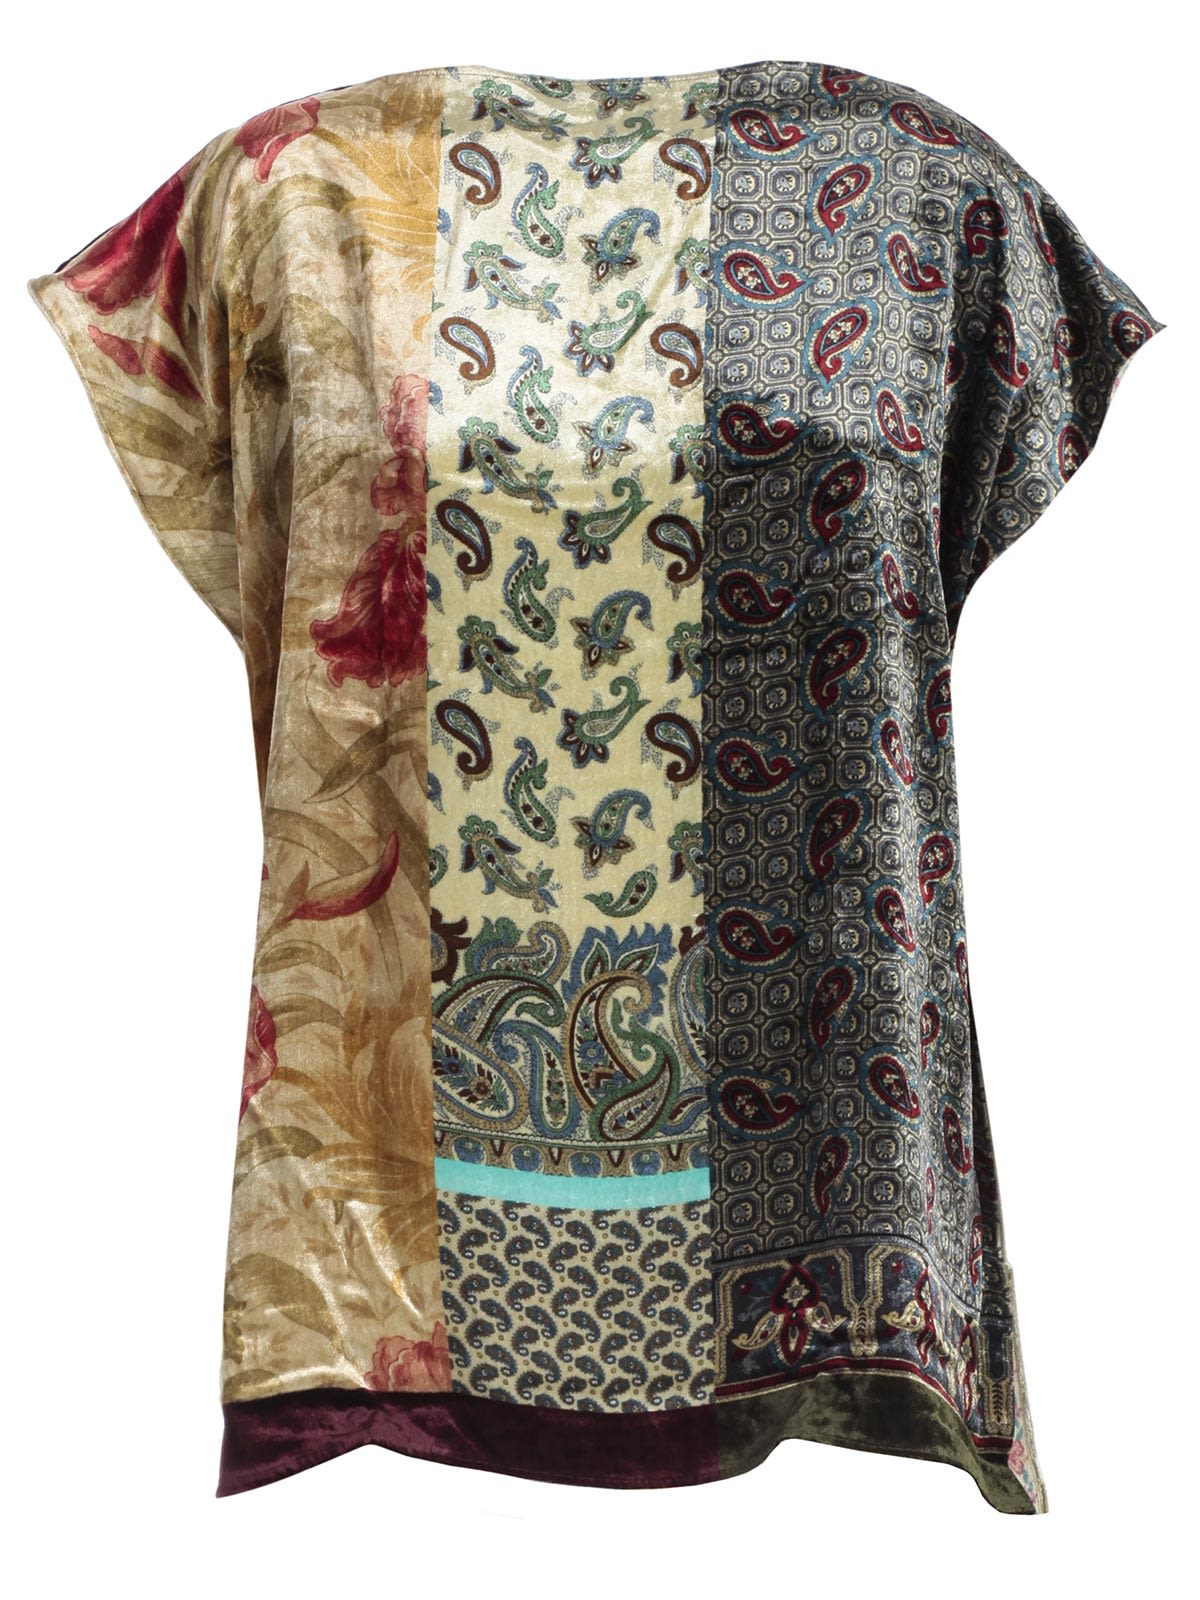 Pierre Louis Mascia' Multiple Paisley And Floral Print Top, Multicolor